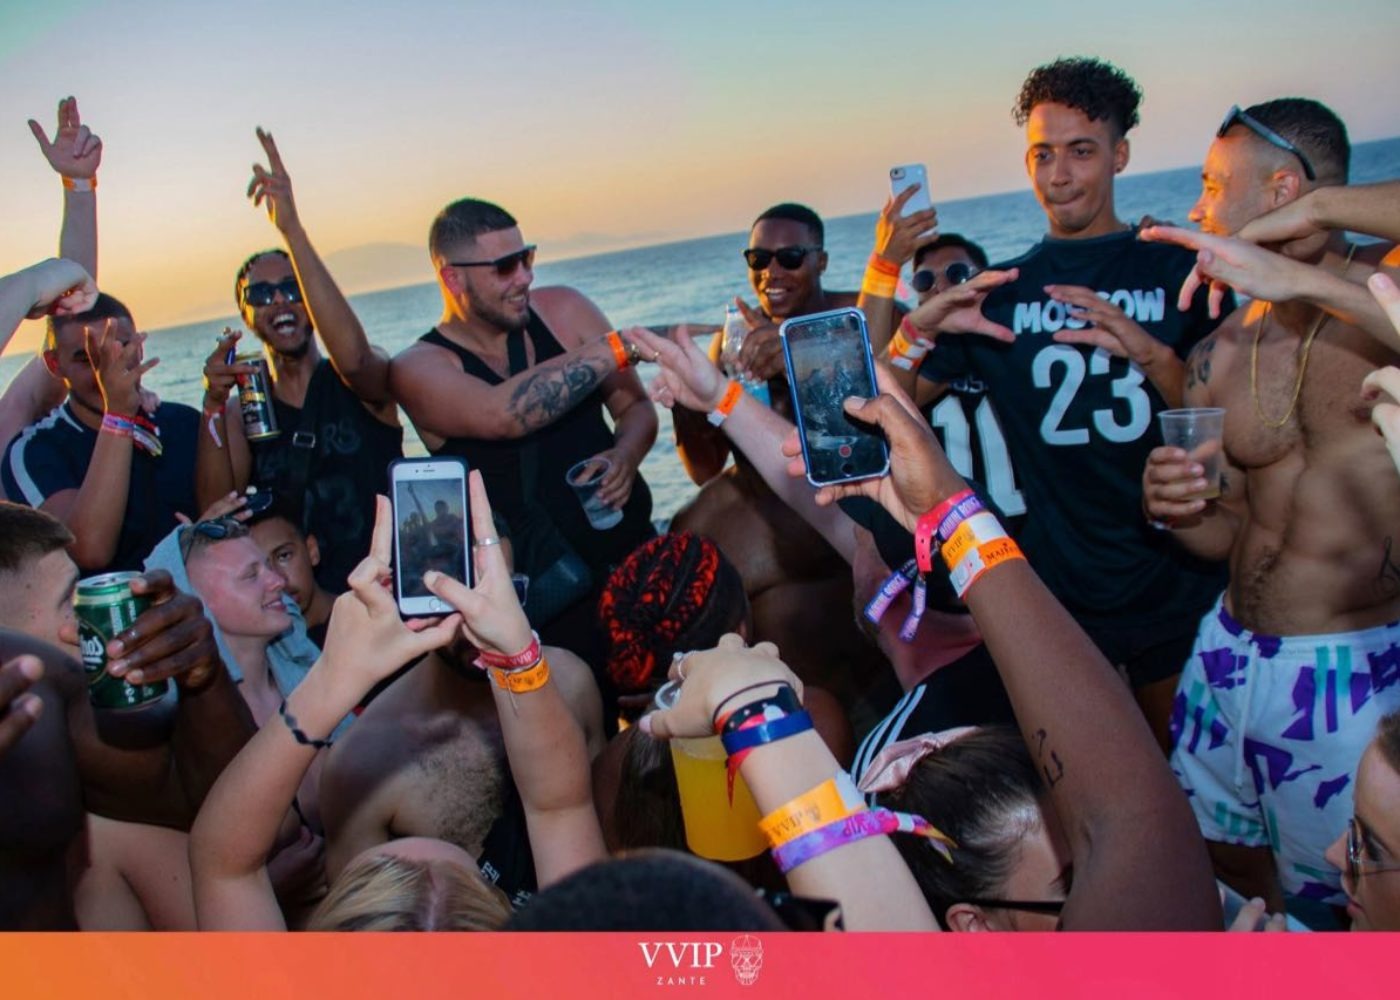 zante vip event packages